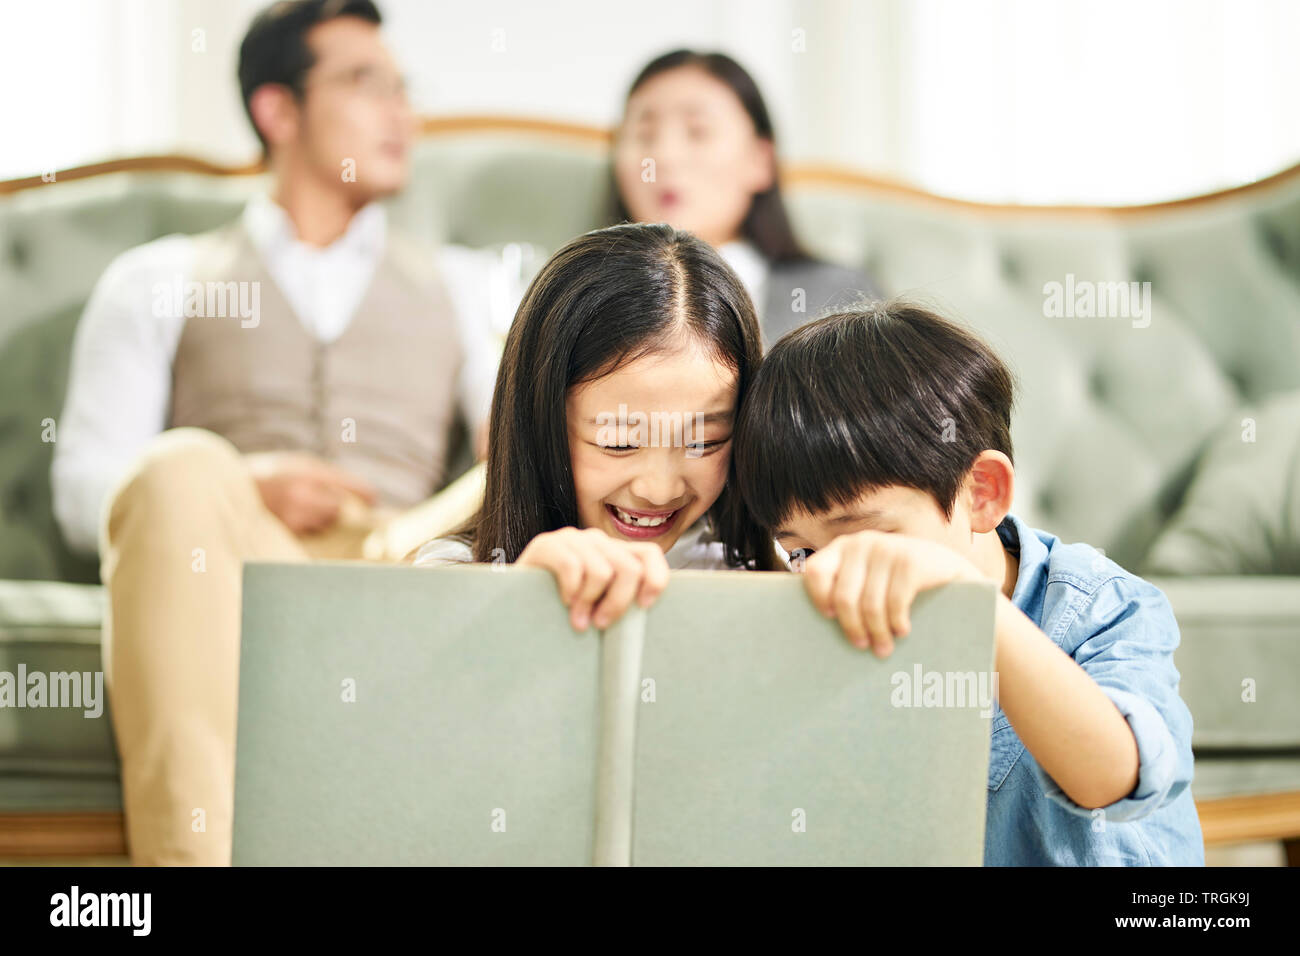 two asian kids brother and sister sitting on carpet reading book together in family living room with parents sitting on couch in the background. Stock Photo